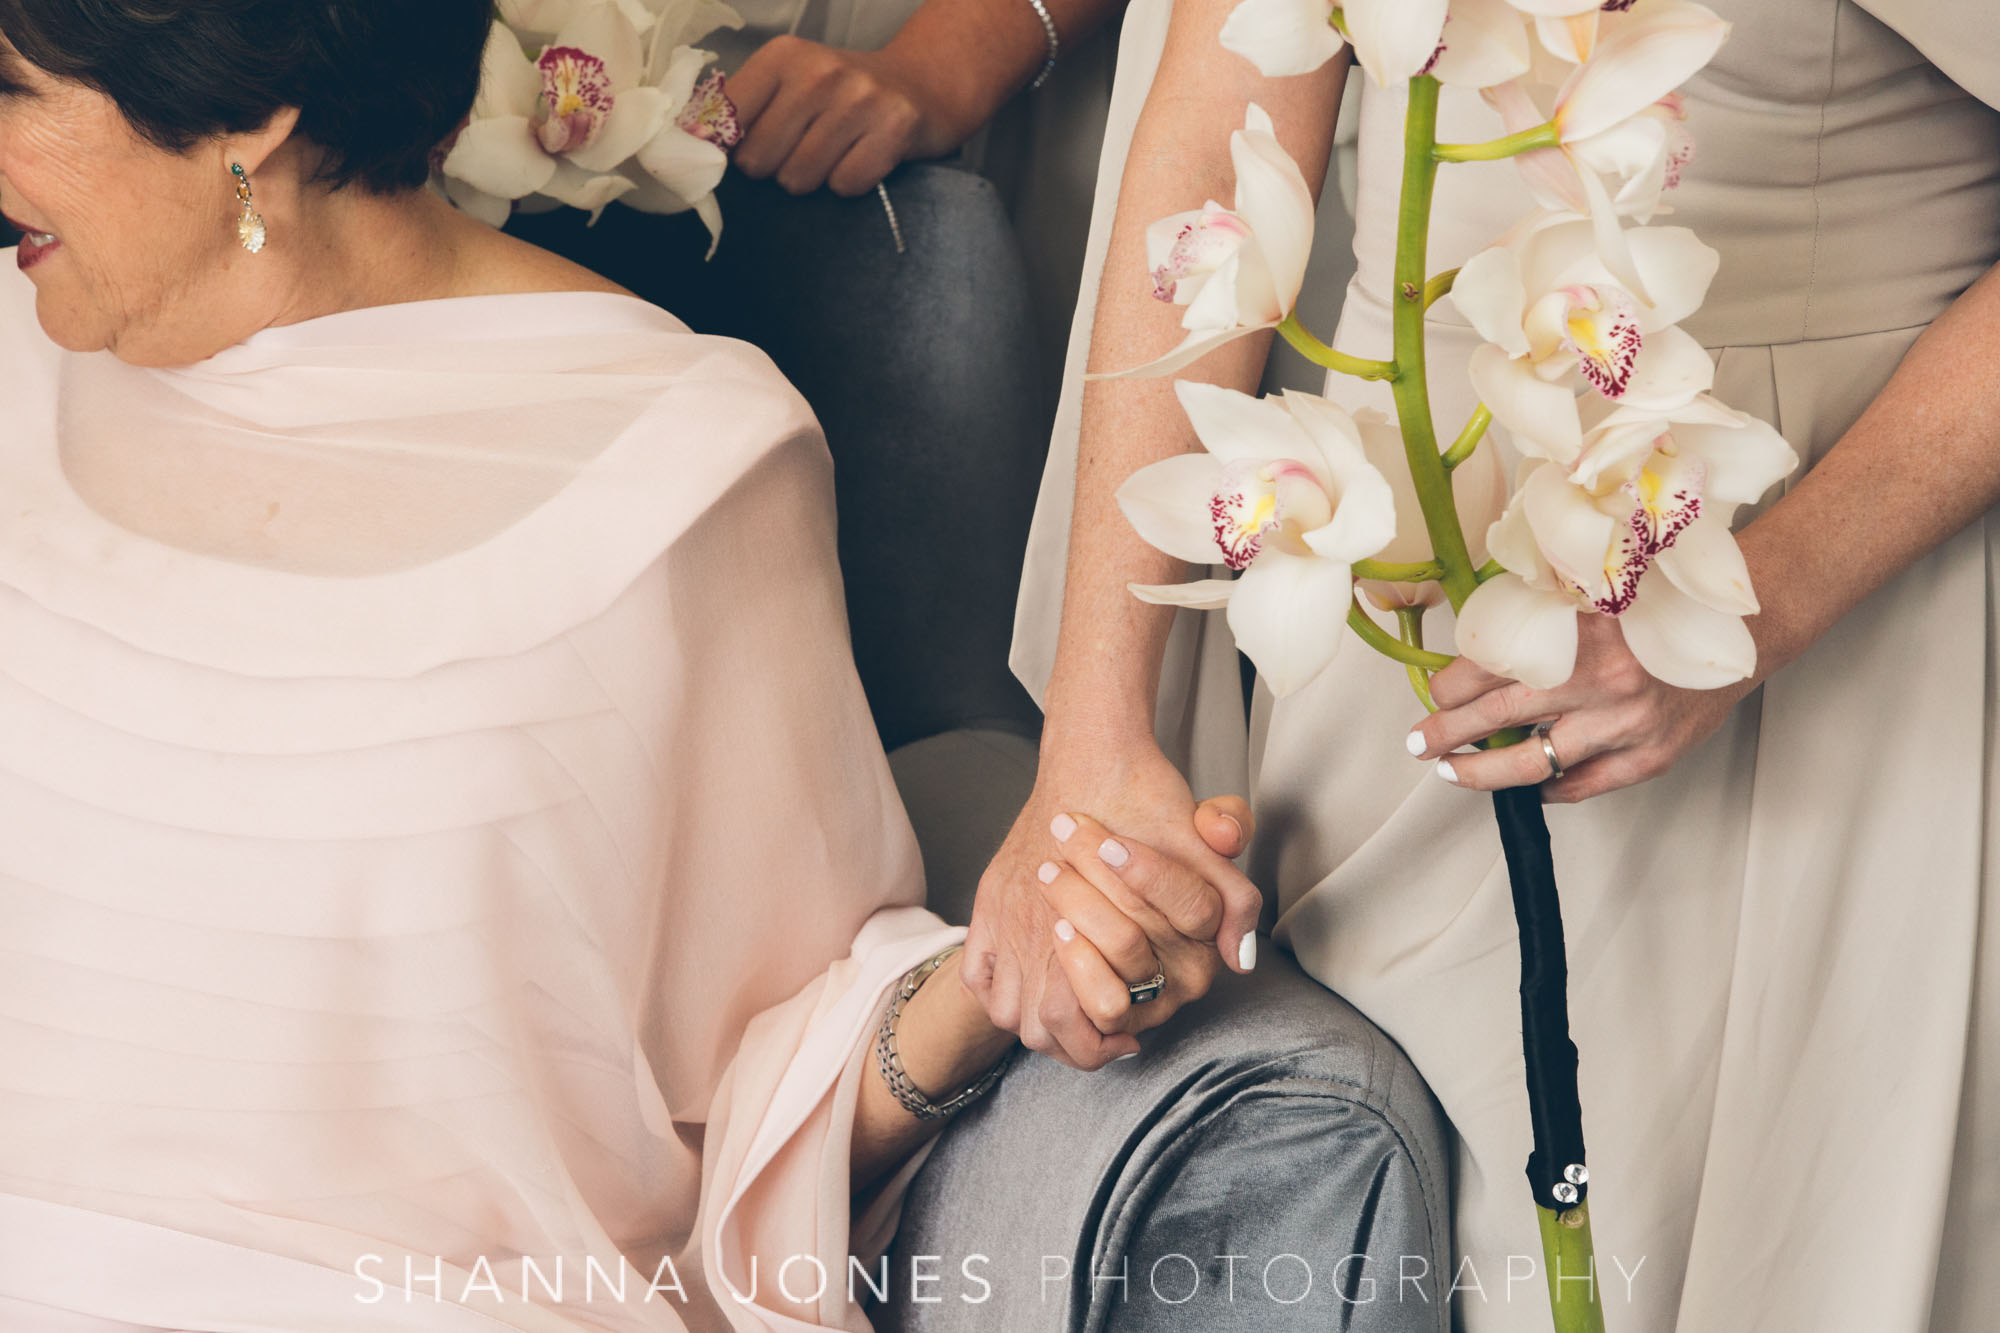 anura-cape-town-wedding-shanna-jones-photography-danna-paul-72.jpg